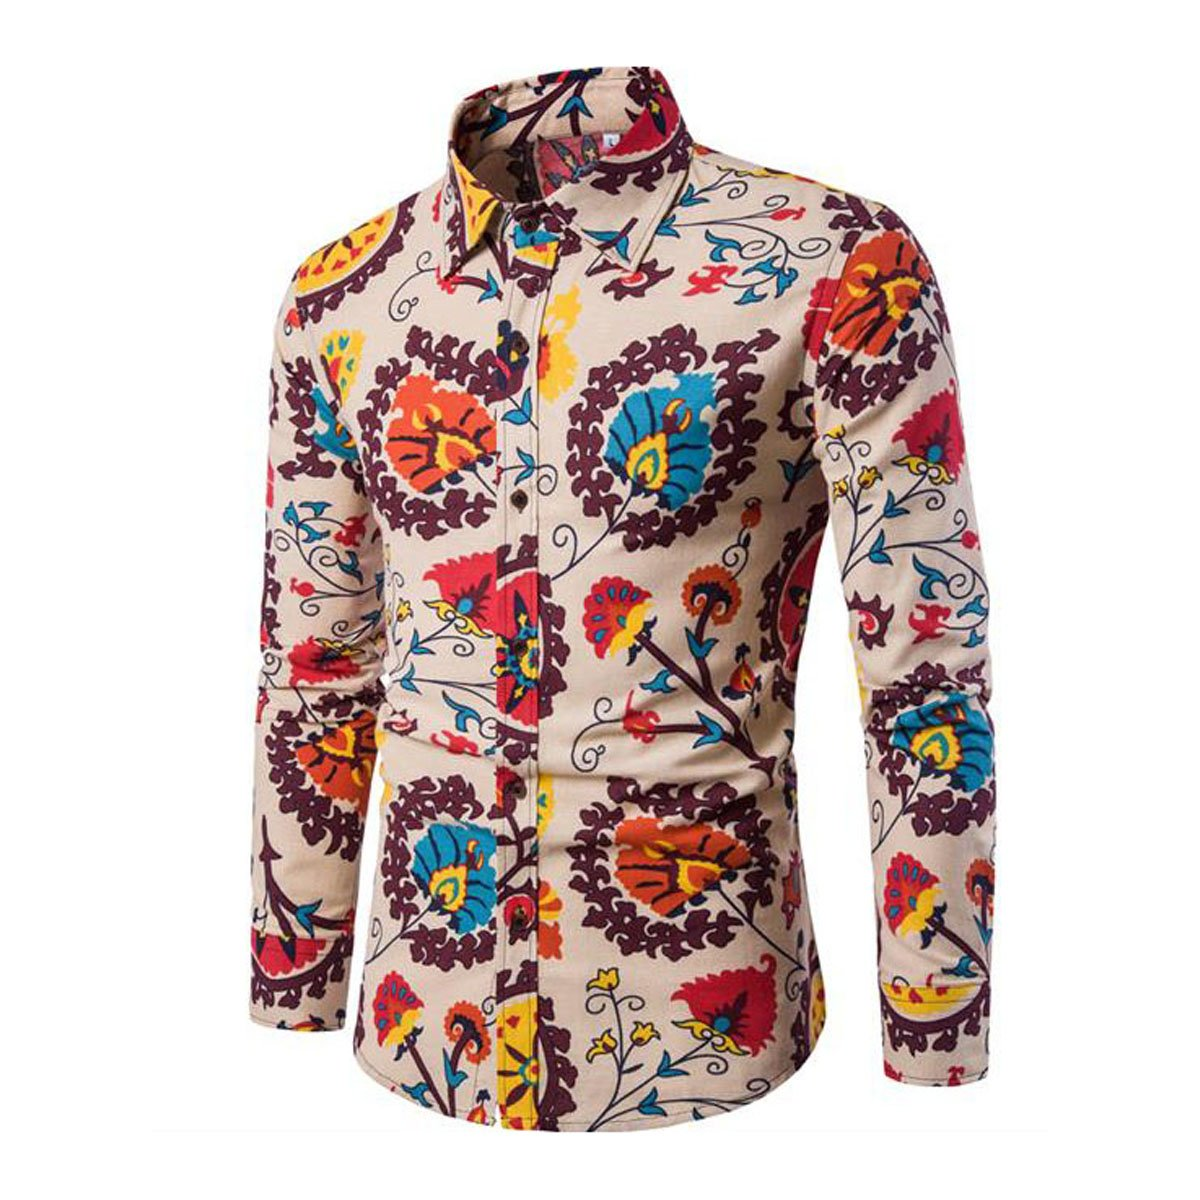 Retro Clothing for Men | Vintage Men's Fashion Allthemen Mens Dress Shirts Long Sleeve Funky Printed Linen Shirt Casual Shirt Fancy Floral Tops Unique Pattern £15.99 AT vintagedancer.com